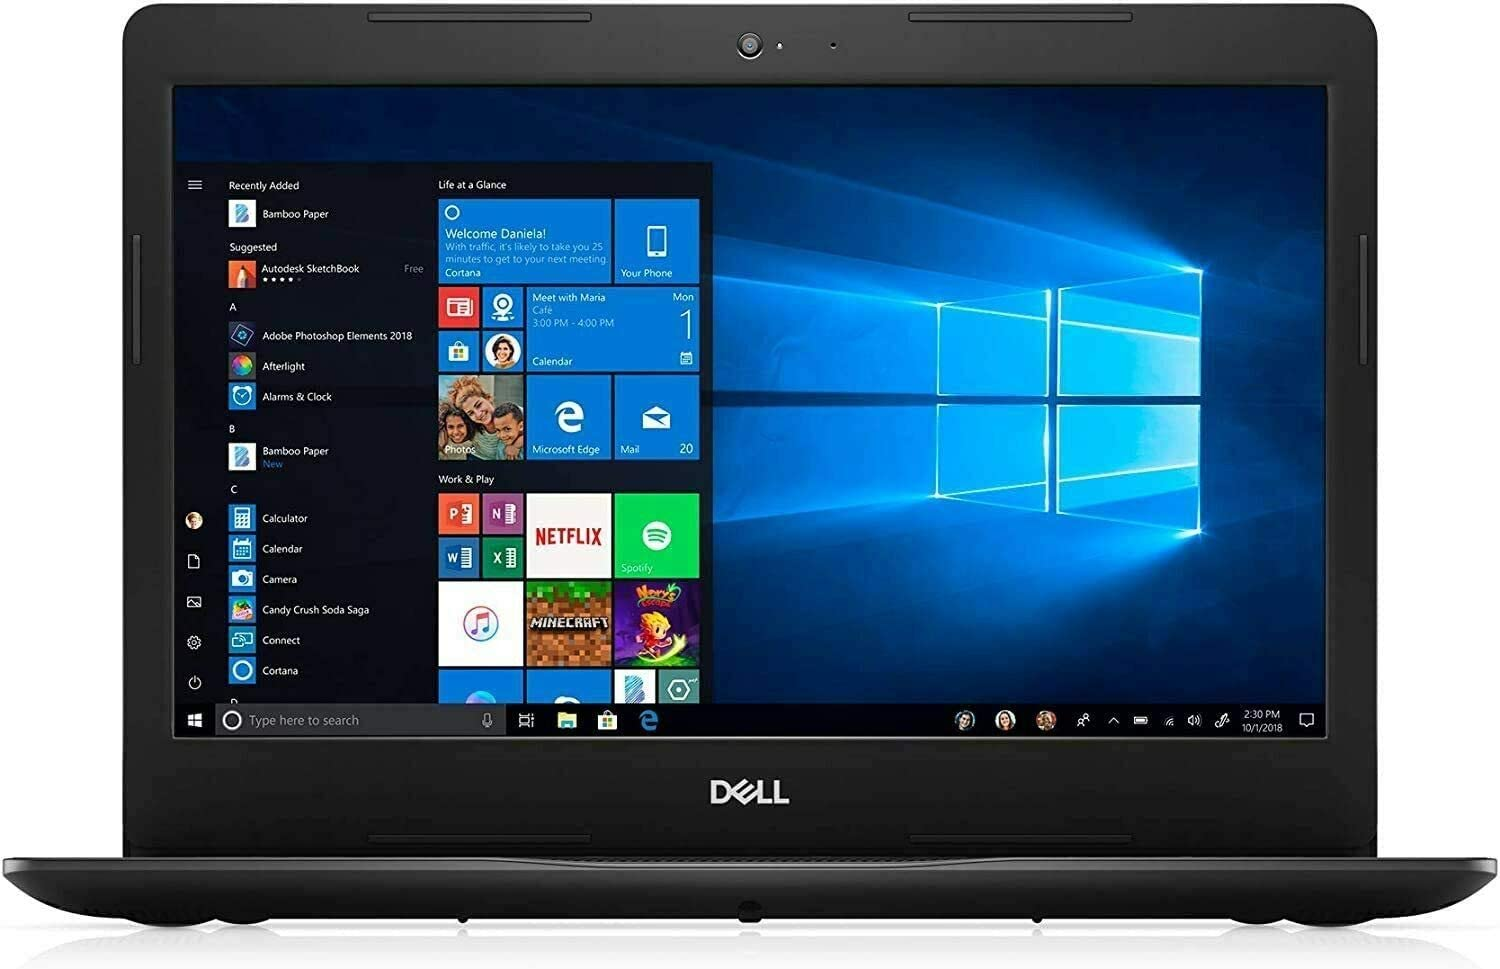 "2020 Newest Dell Inspiron 15 15.6"" Laptop Computer, 10th Gen Intel Core i3 1005G1 (Beat i5-7200u), 4GB DDR4 RAM, 128GB PCIe SSD, 802.11ac WiFi, Online Class Ready, Black, Windows 10, iPuzzle Mousepad"